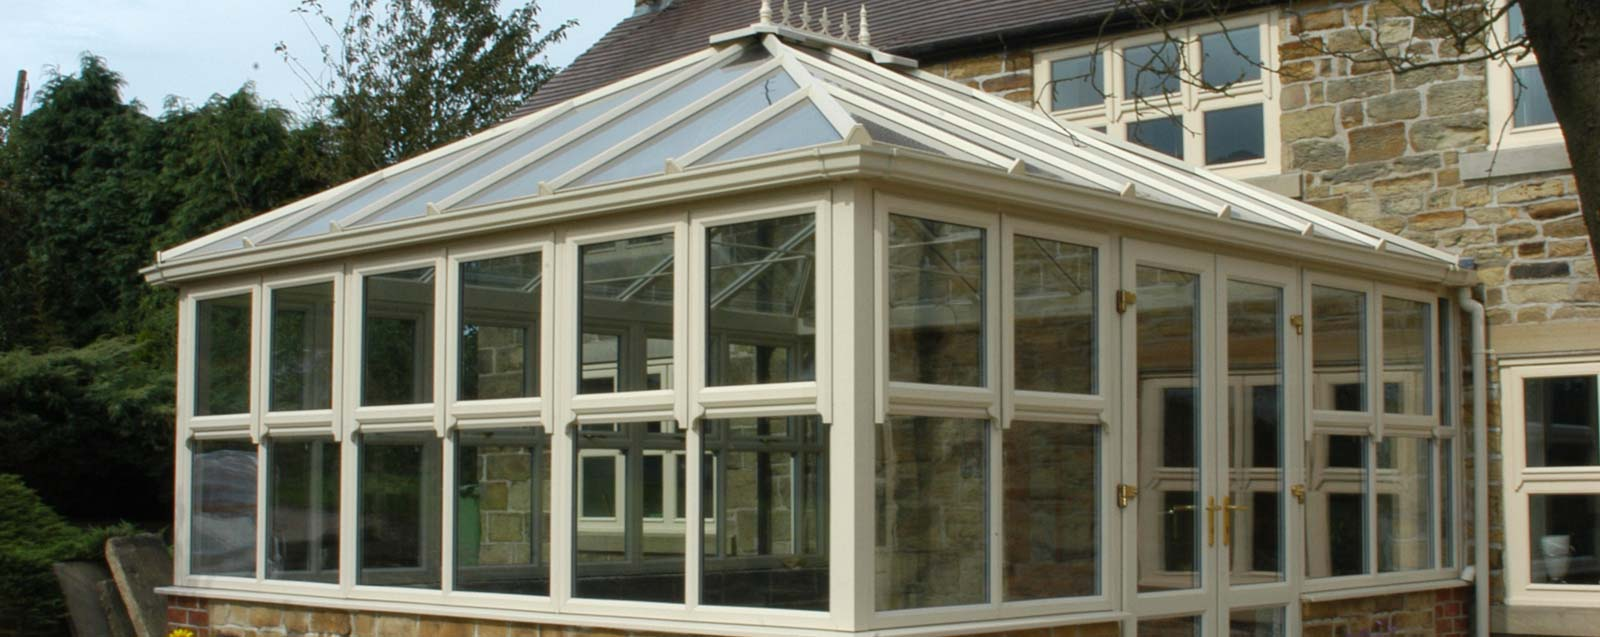 Windows and Doors in West Sussex - Find a trade with Checkatrade